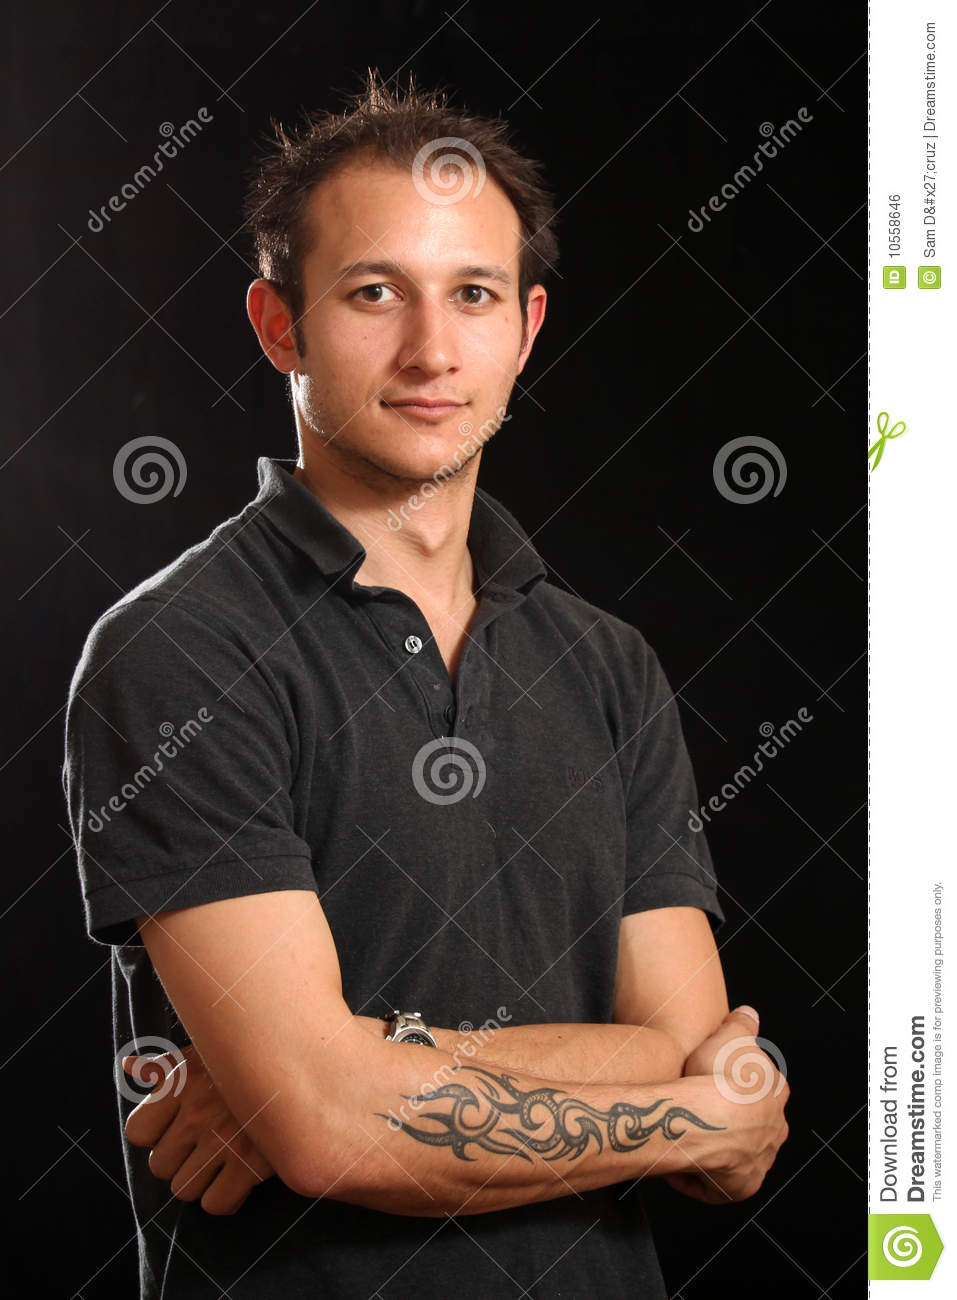 Good Looking Young Man In Studio Royalty Free Stock Image ...  Good Looking Young Man